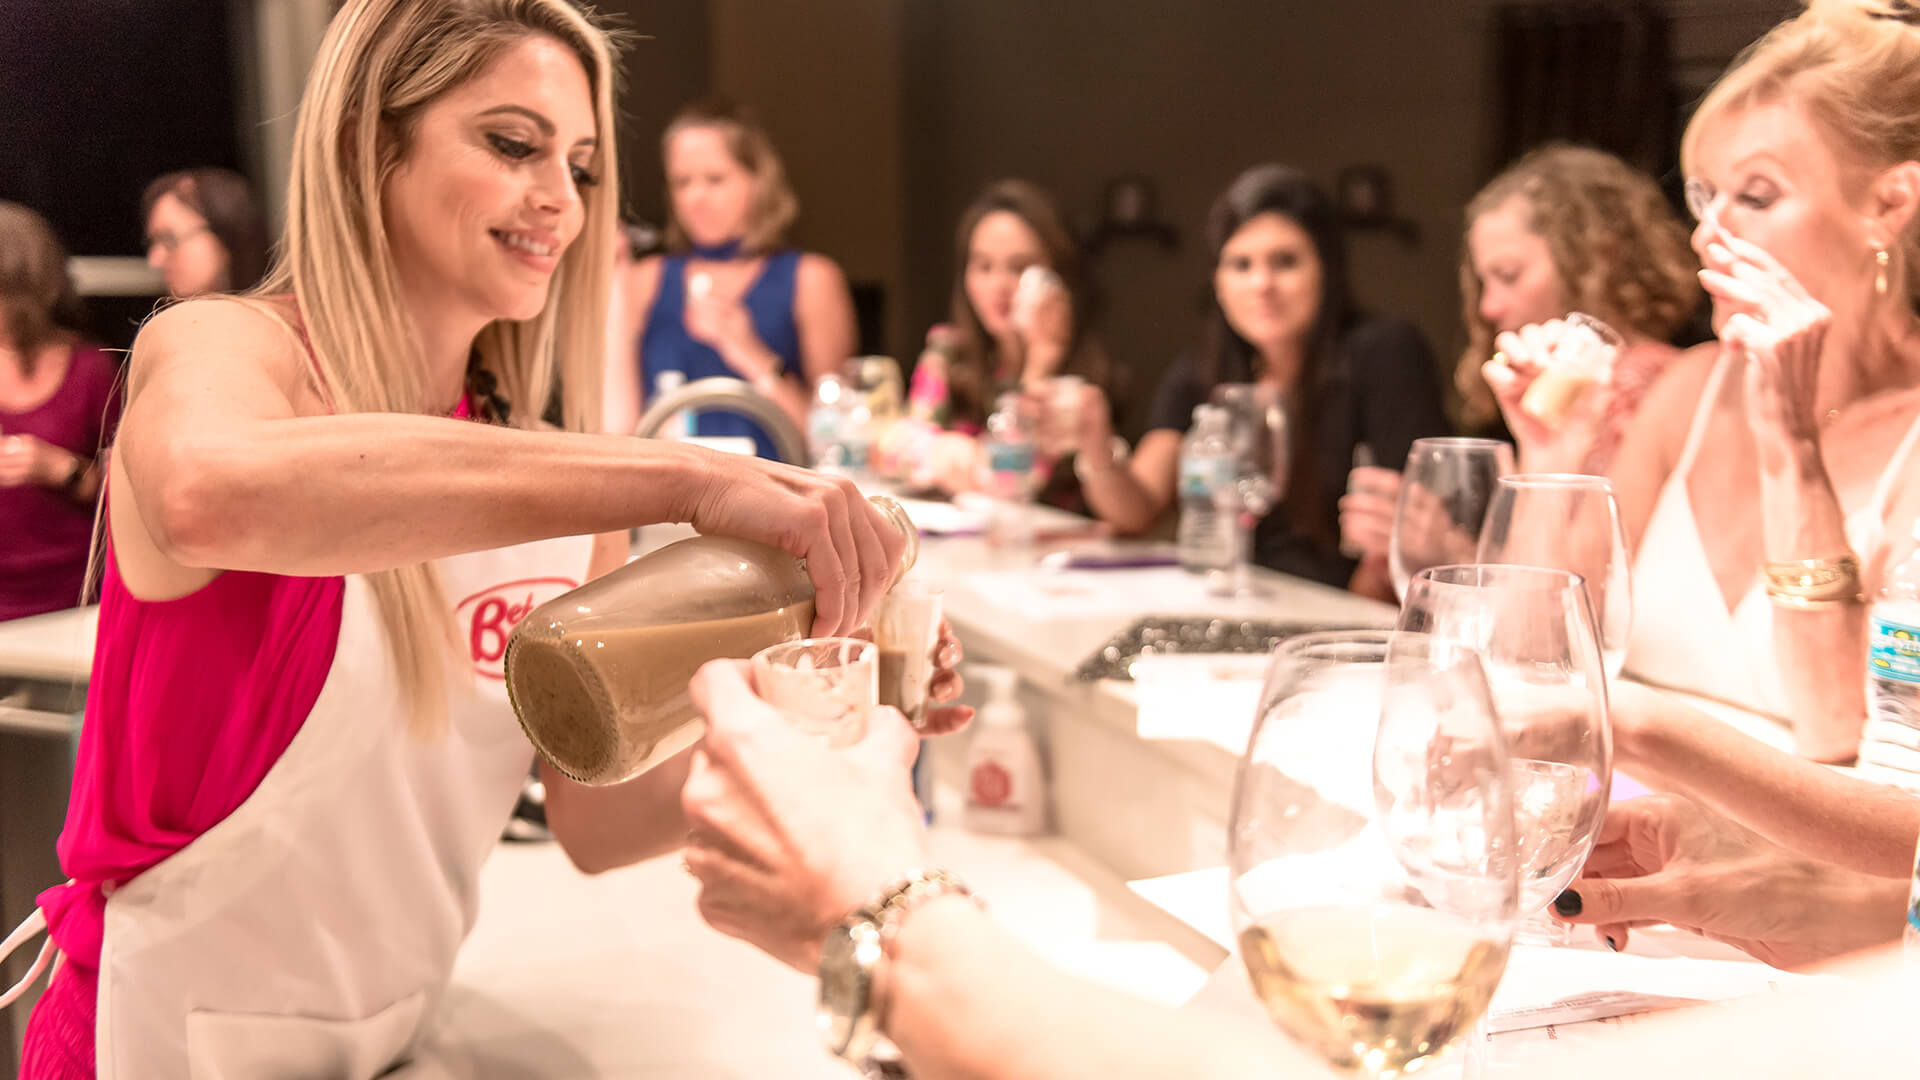 Bella Diva Cooking Classes